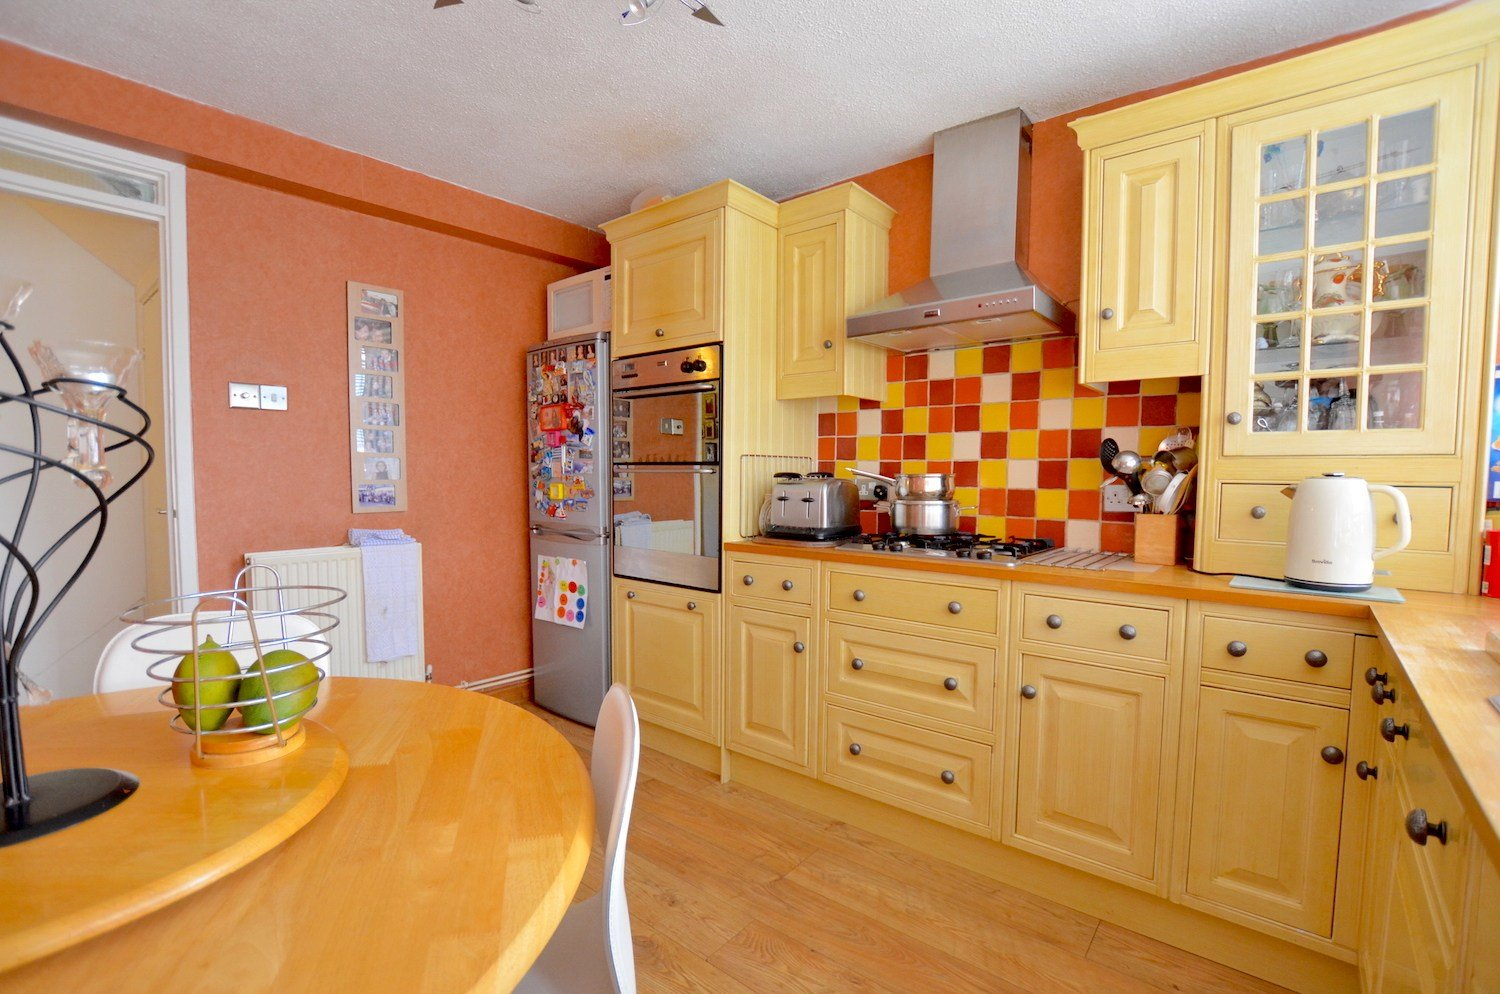 Best 1 Bedroom Flat To Rent In Camden Rd Nw1 London With Pictures Original 1024 x 768